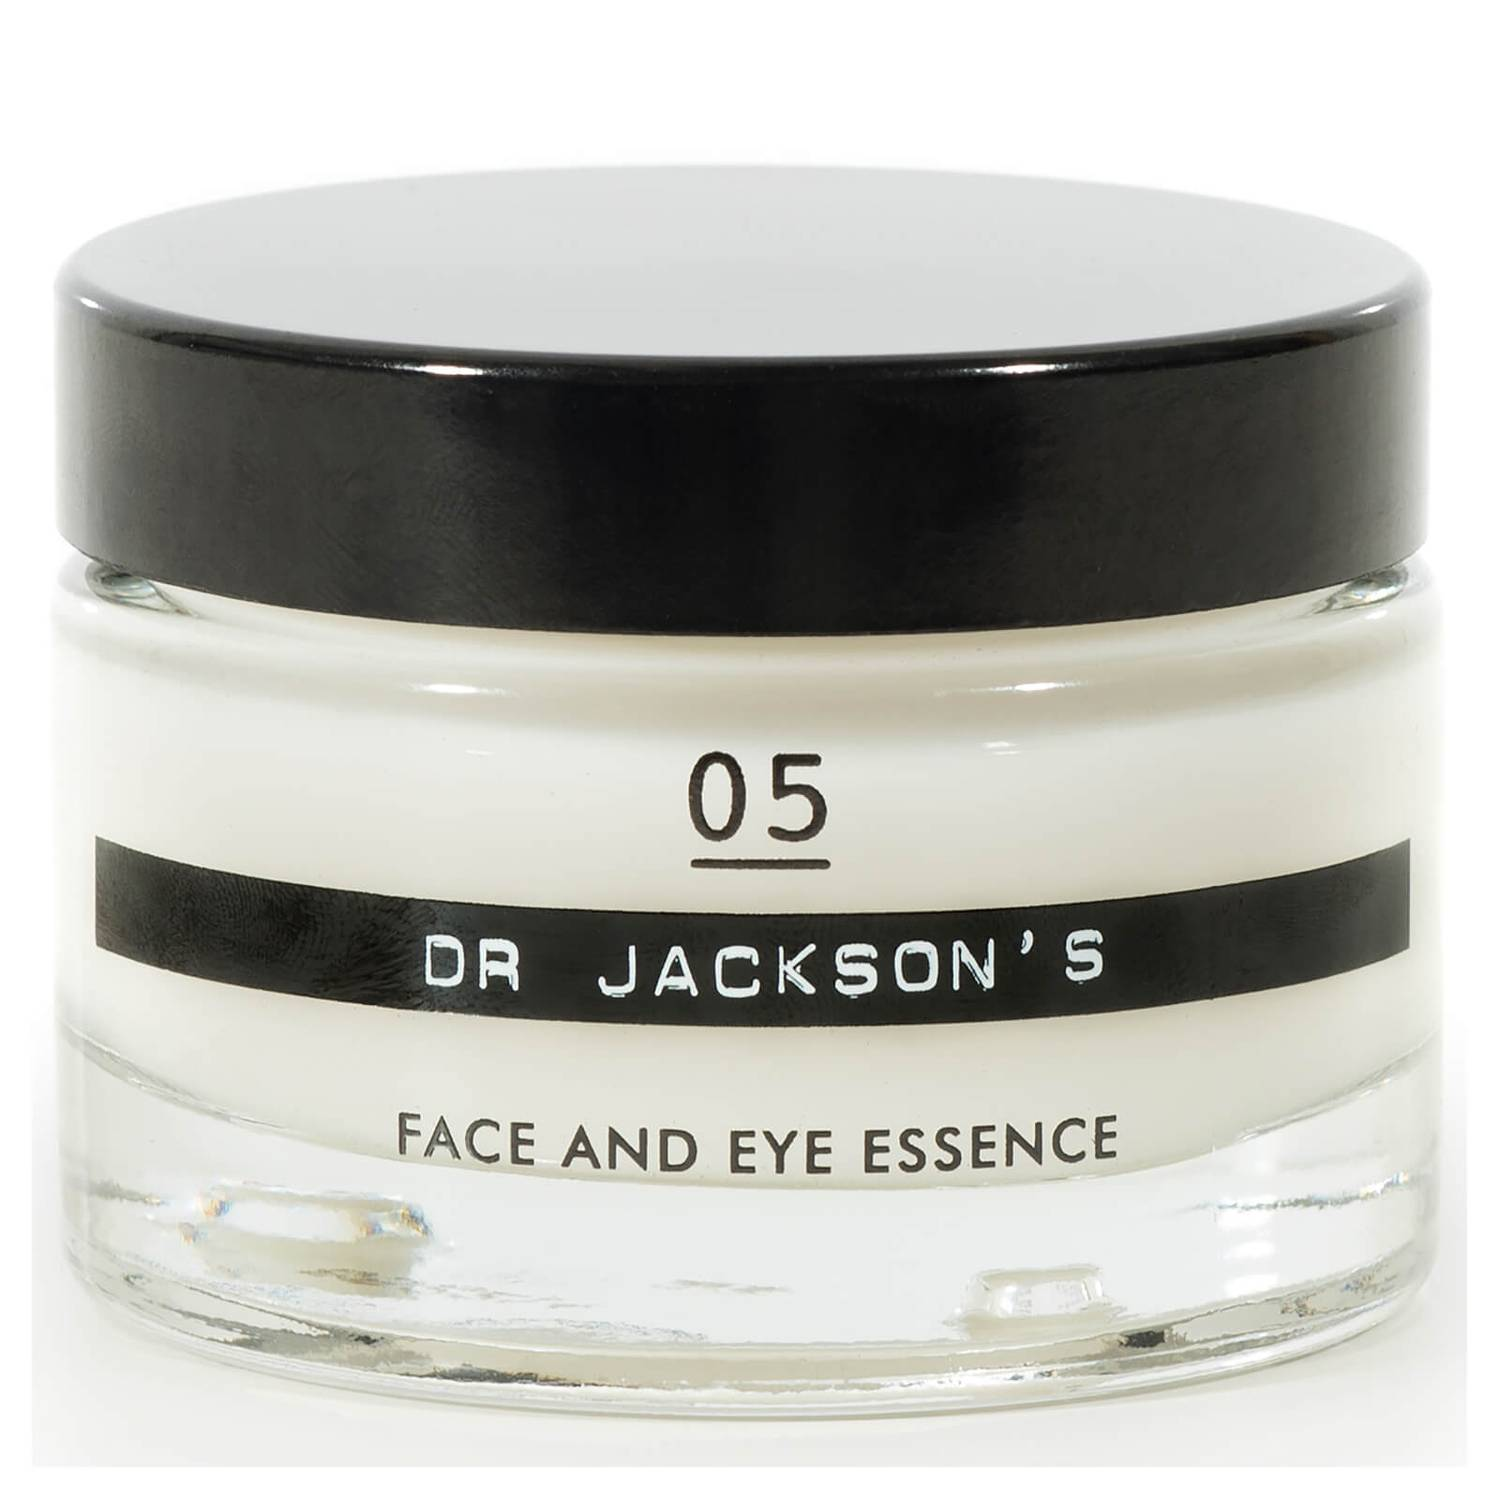 Dr. Jackson's Natural Products 05 Face and Eye Essence